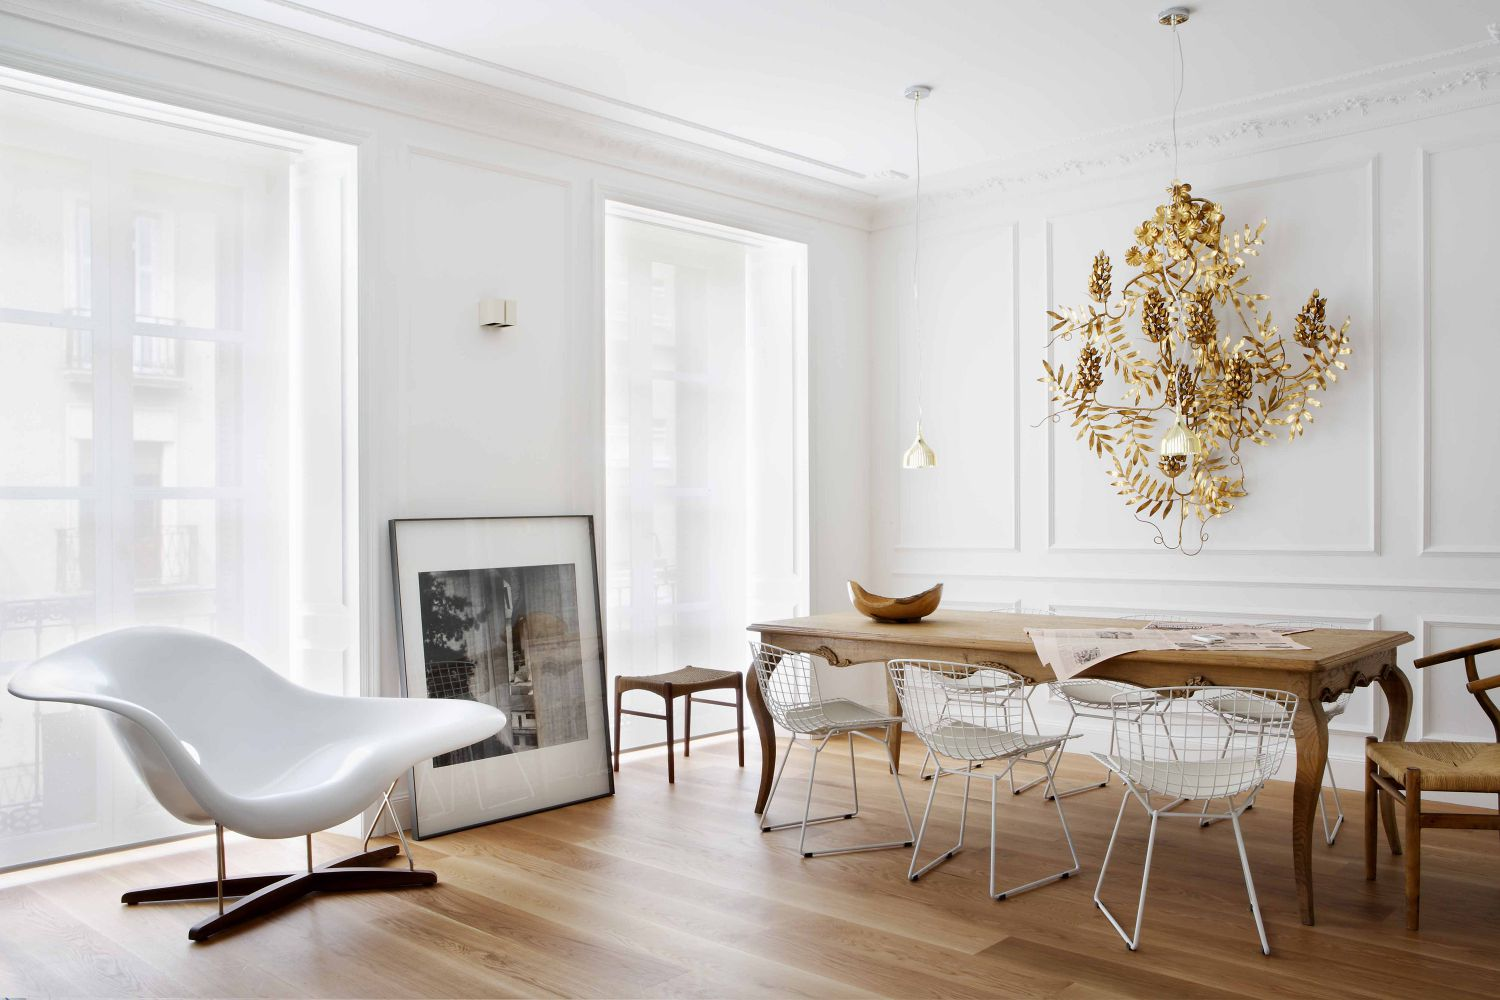 Modern living and dining room in Spanish apartment via @thouswellblog